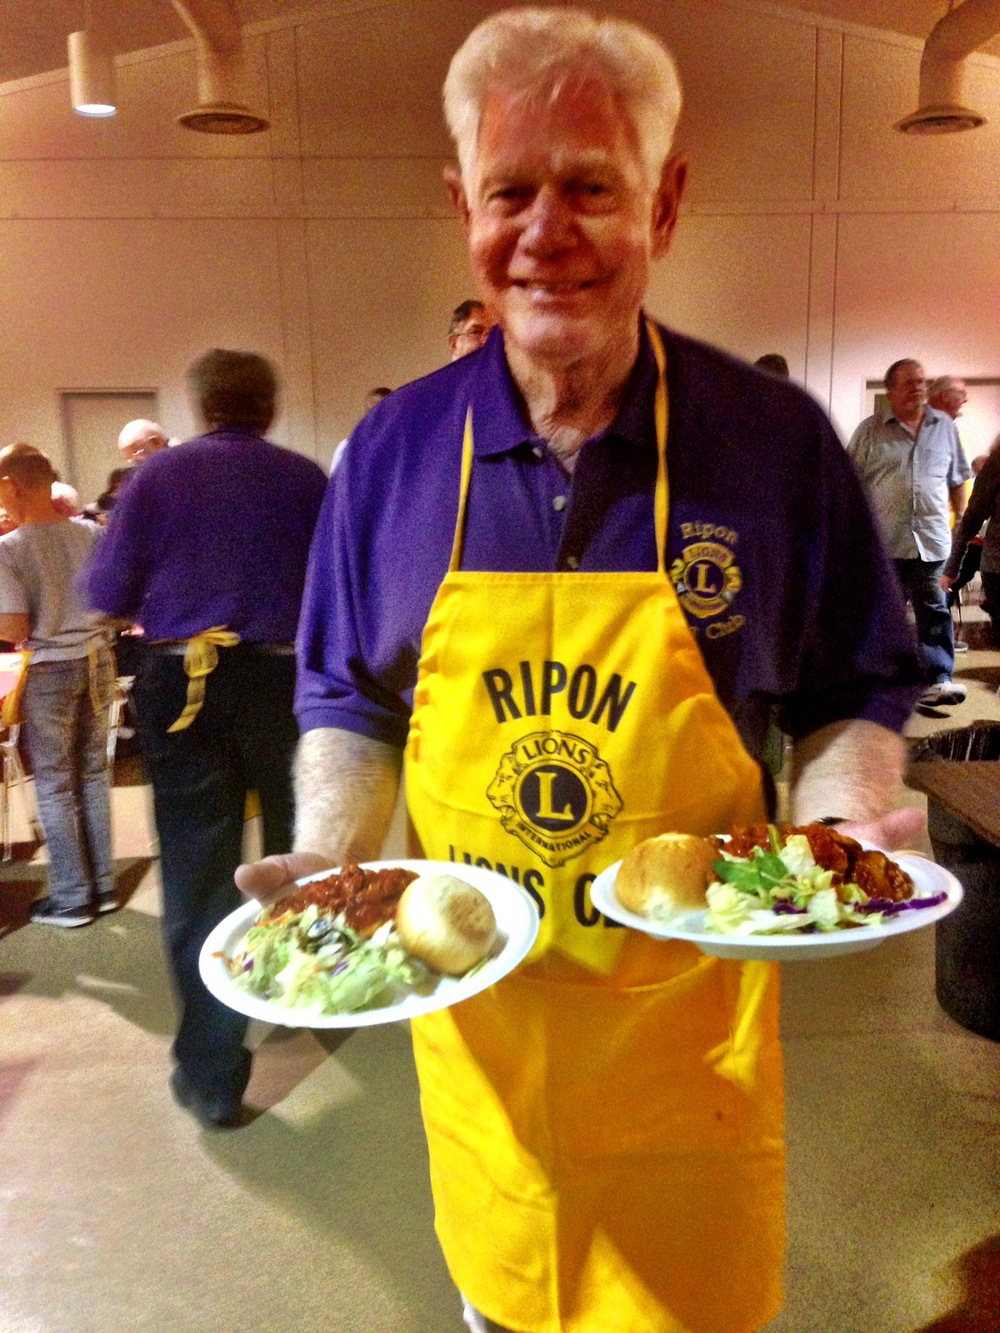 ARVIN SERVING AT THE ANNUAL LION'S CLUB BREAKFAST